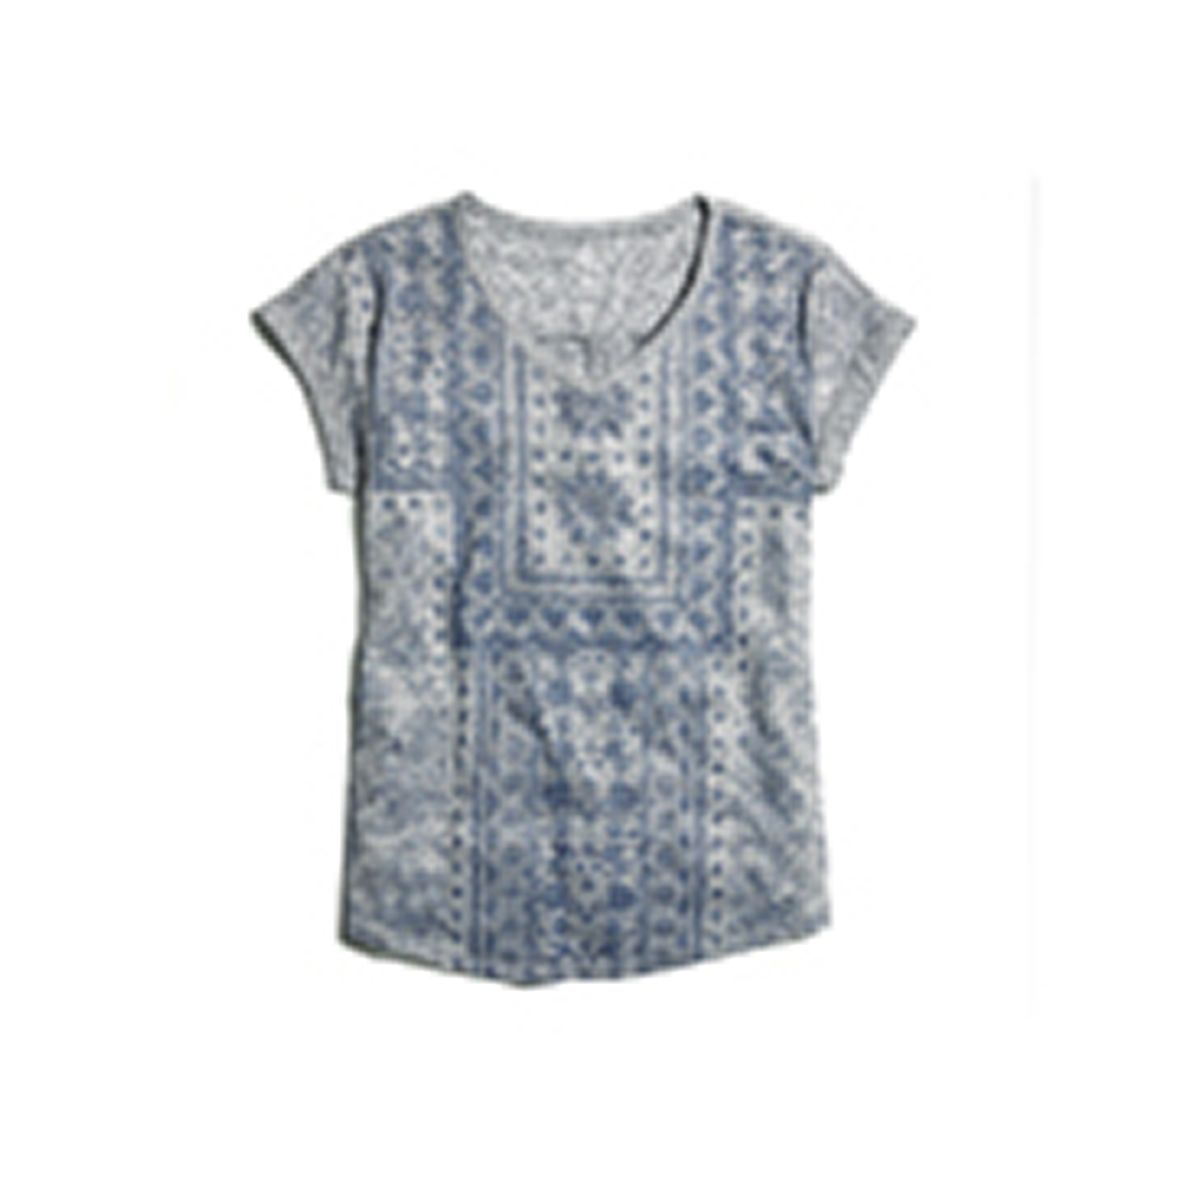 fb7a4b58a Style & Co Womens Tops - Macy's